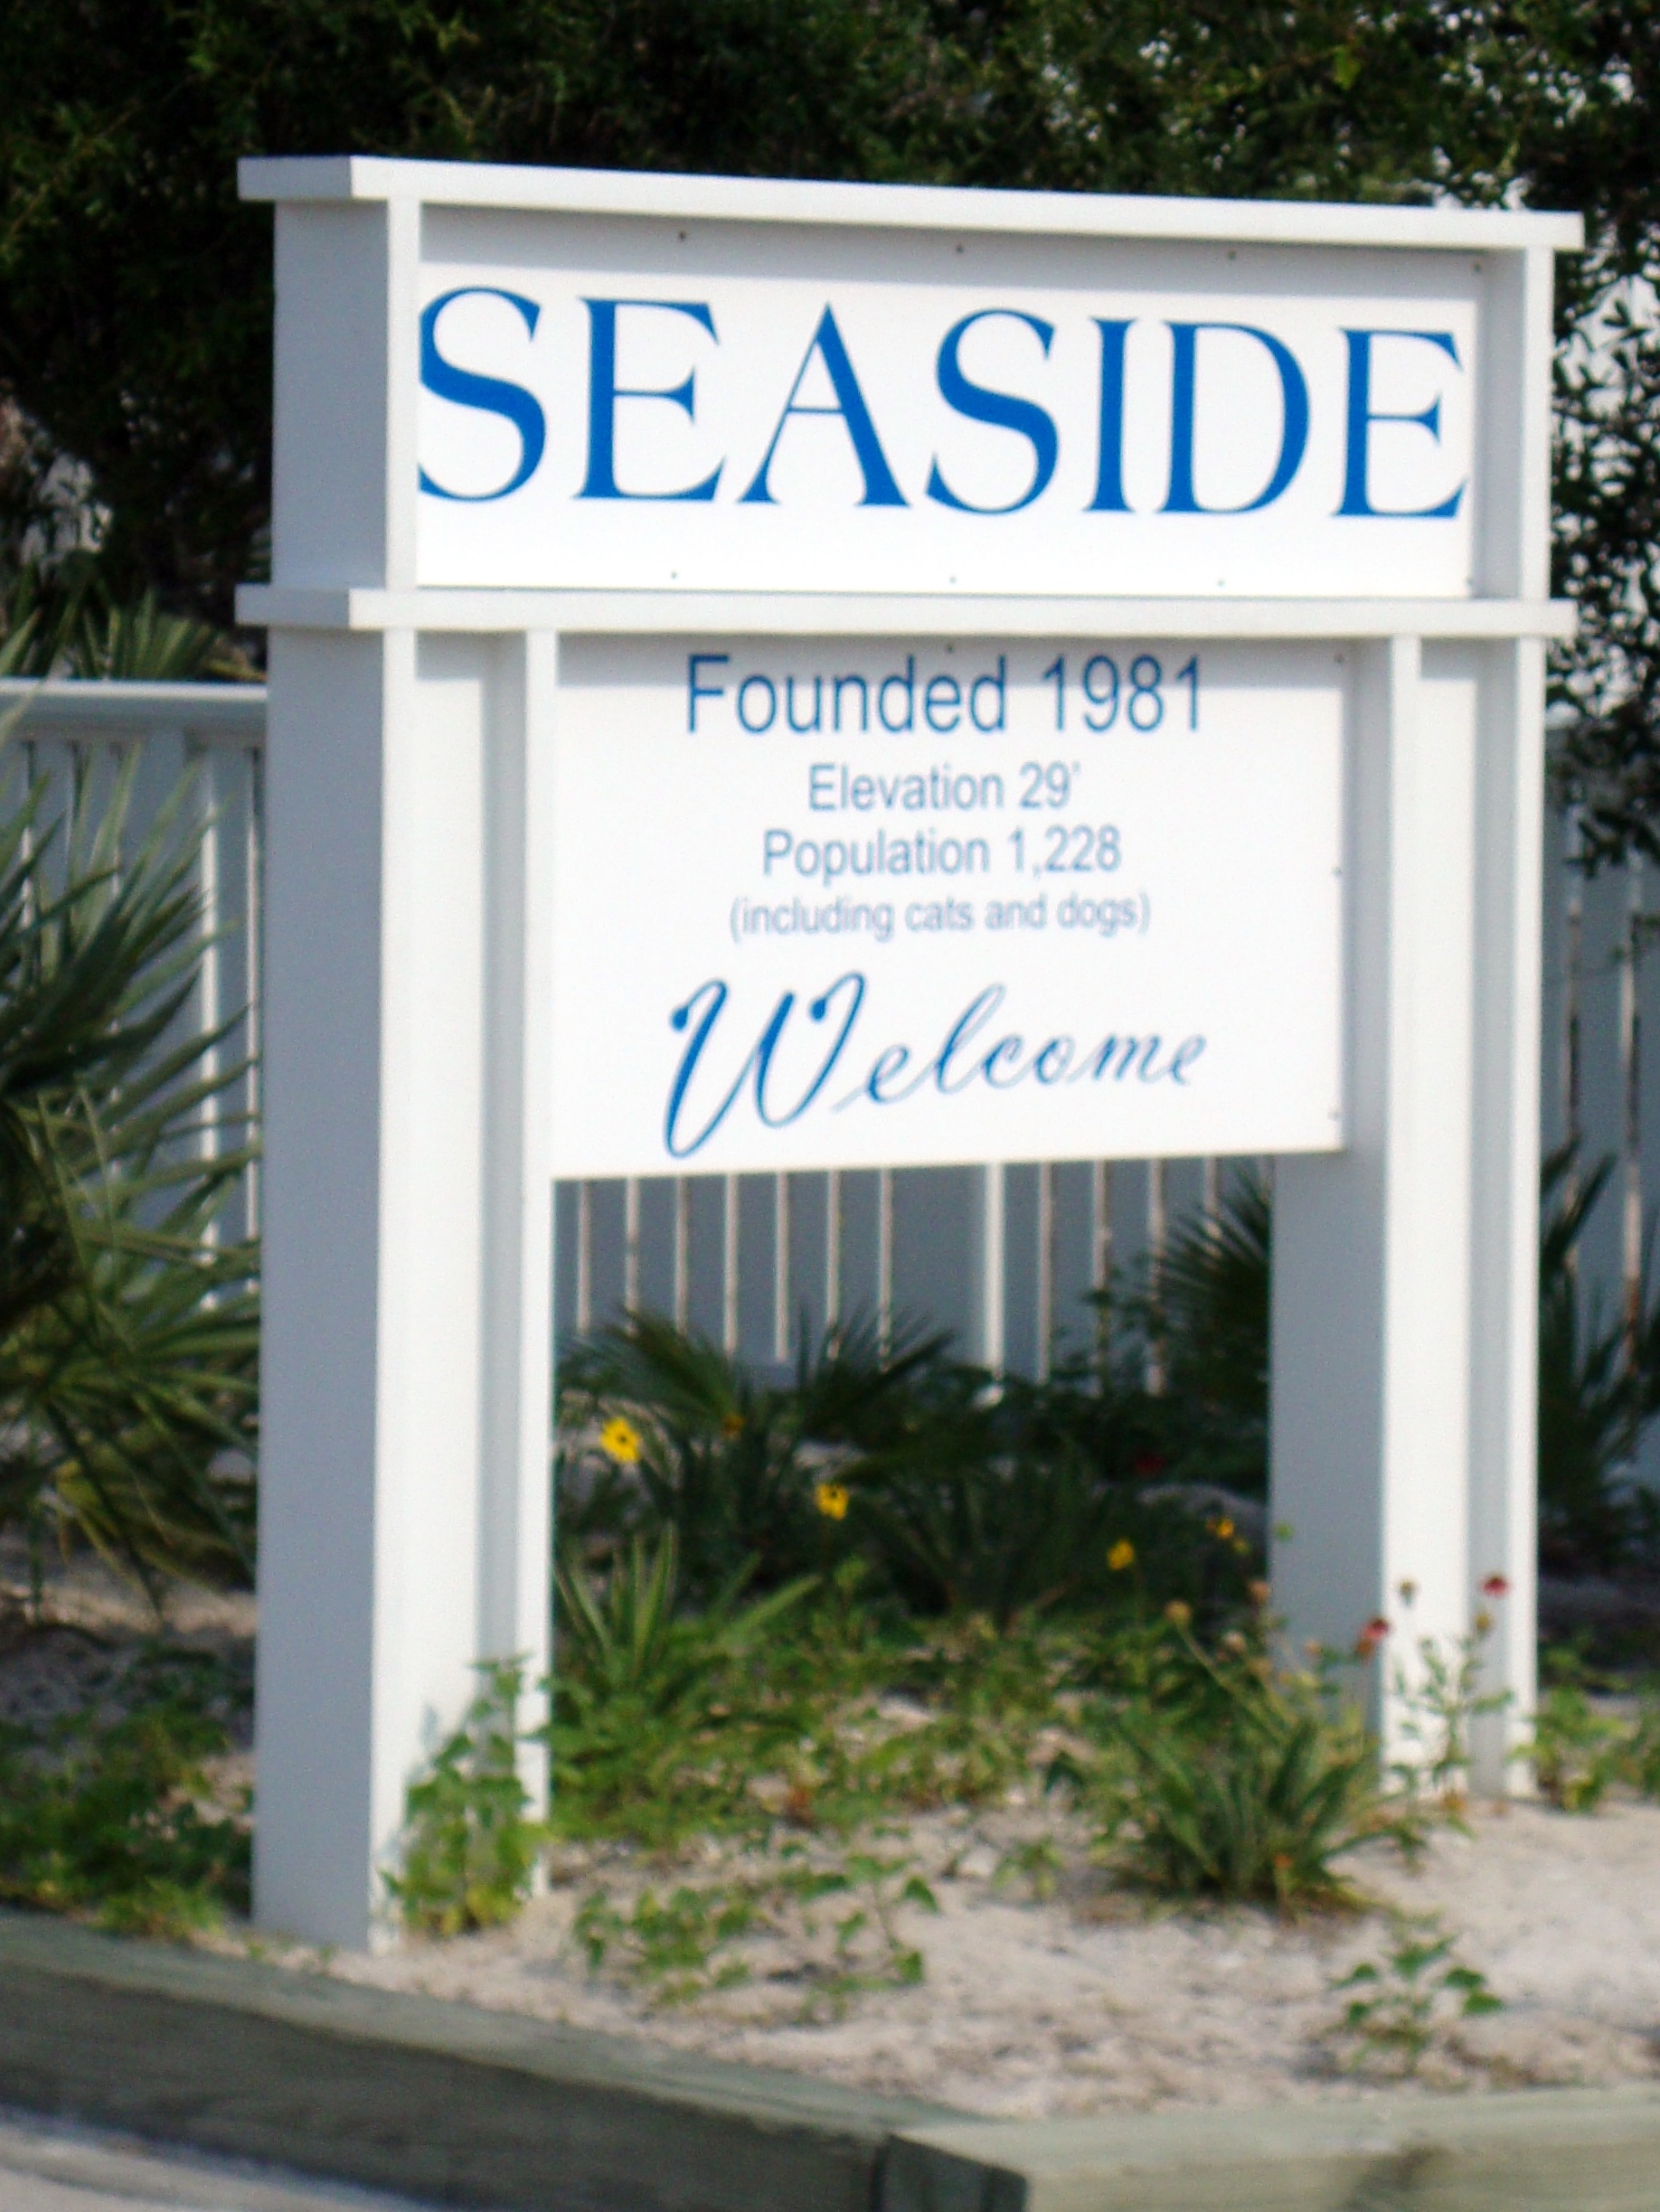 Things to do in seaside florida where we stayed great for Seaside fl